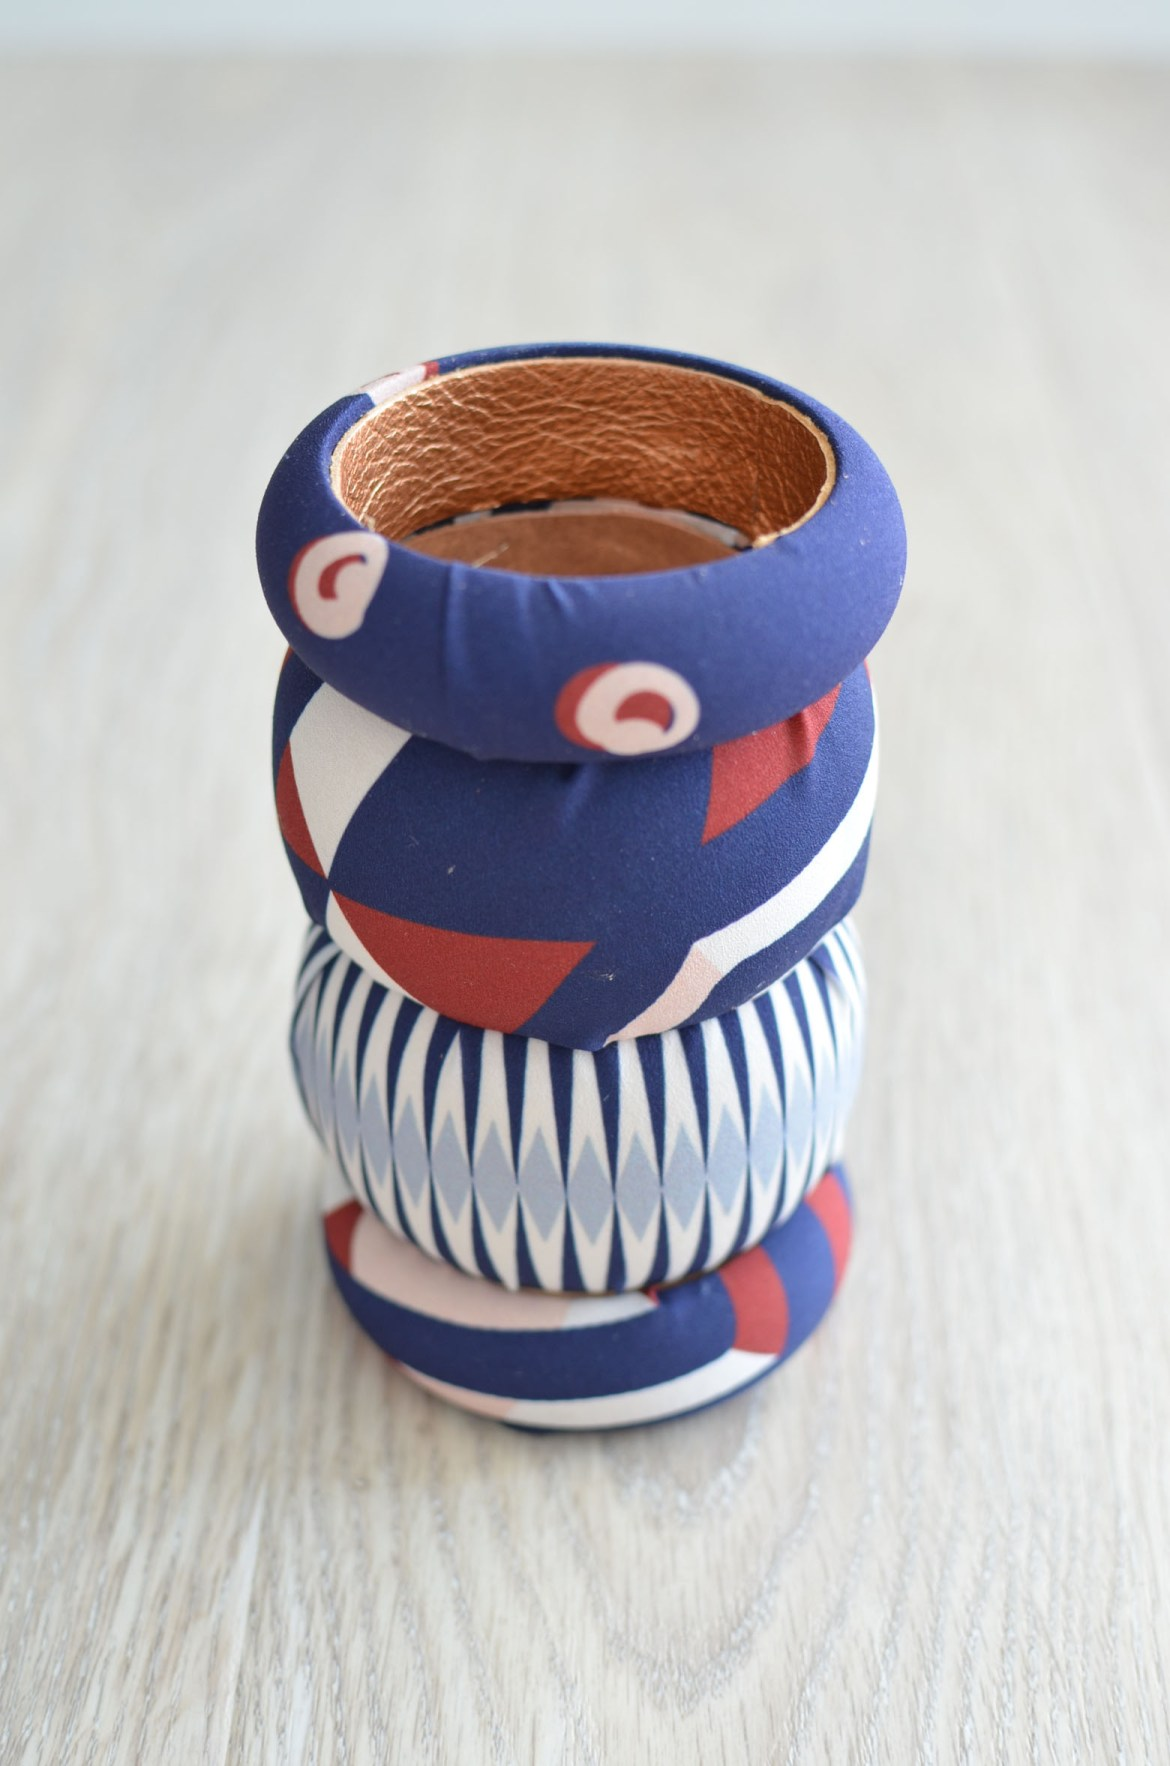 Stefanie from the Style Safari shows how to DIY printed fabric bangles